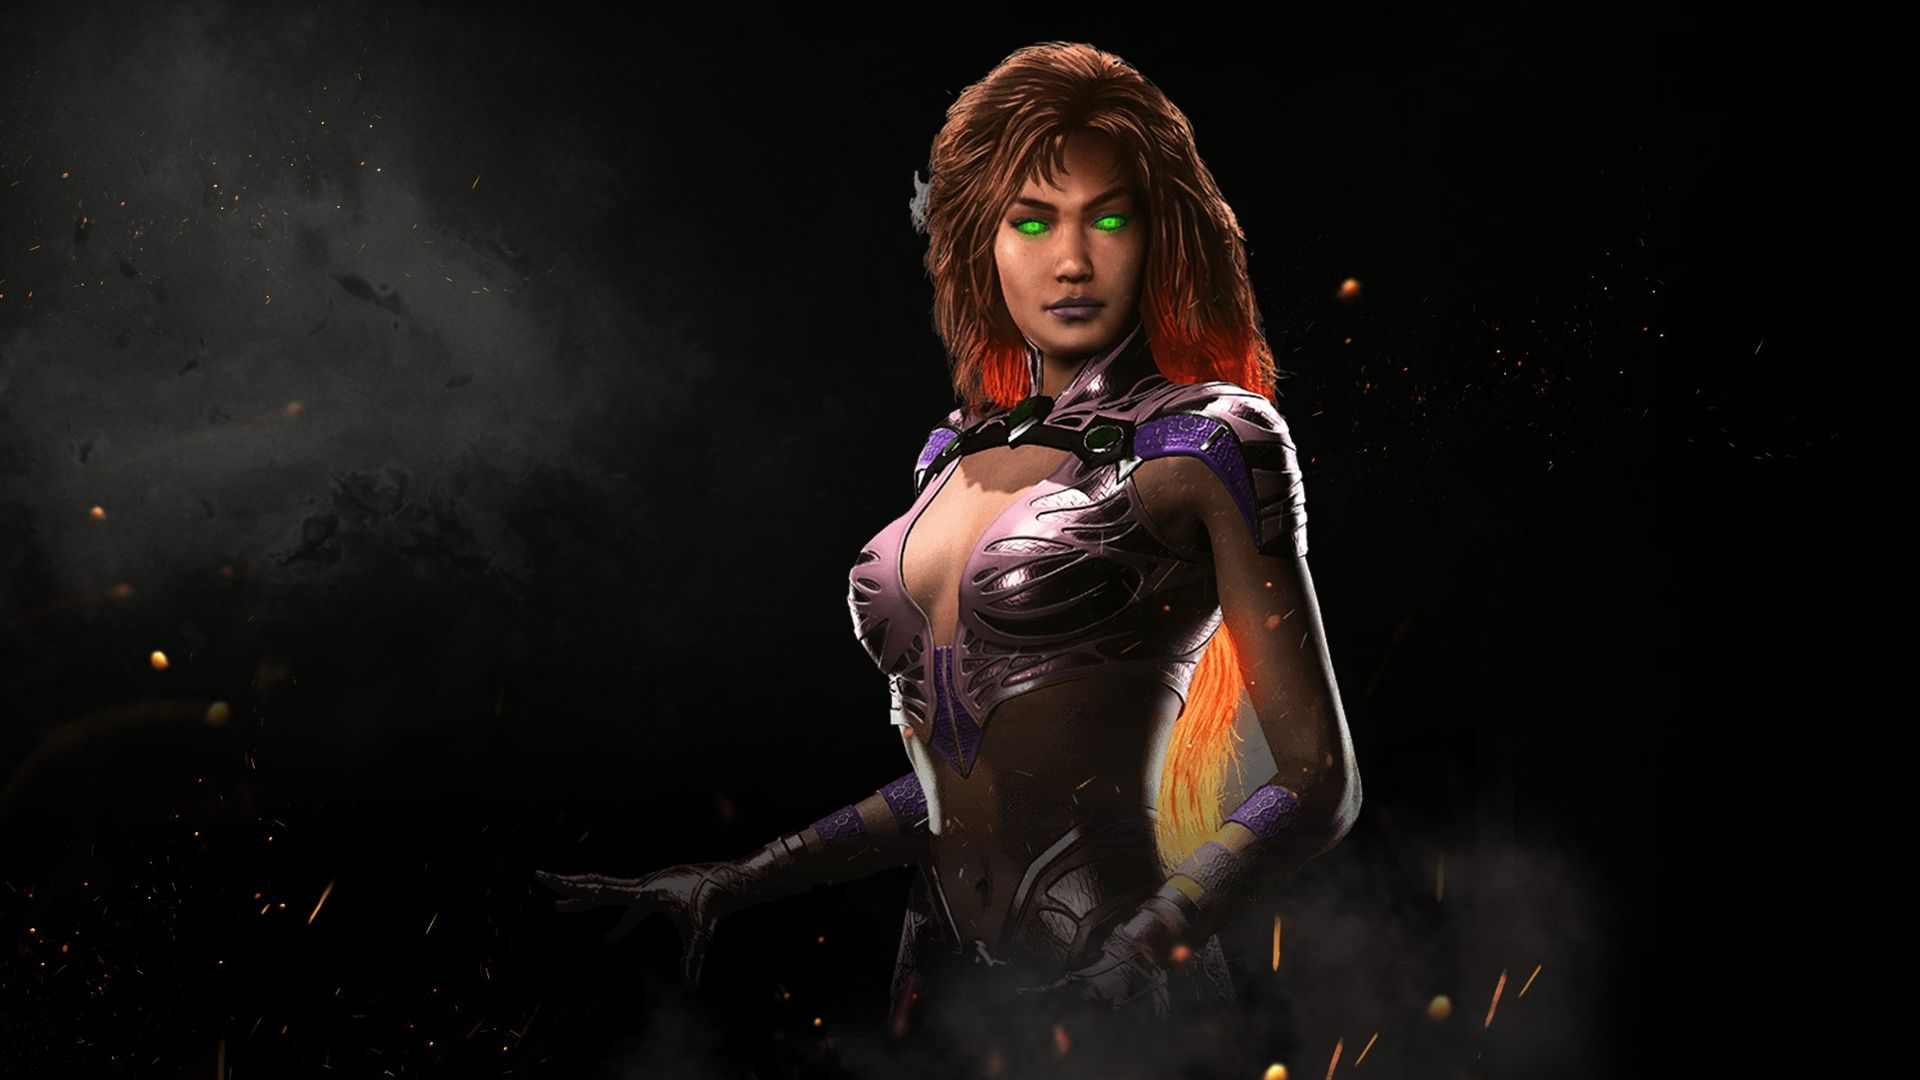 cool starfire injustice 2 game 1920x1080 injustice 2